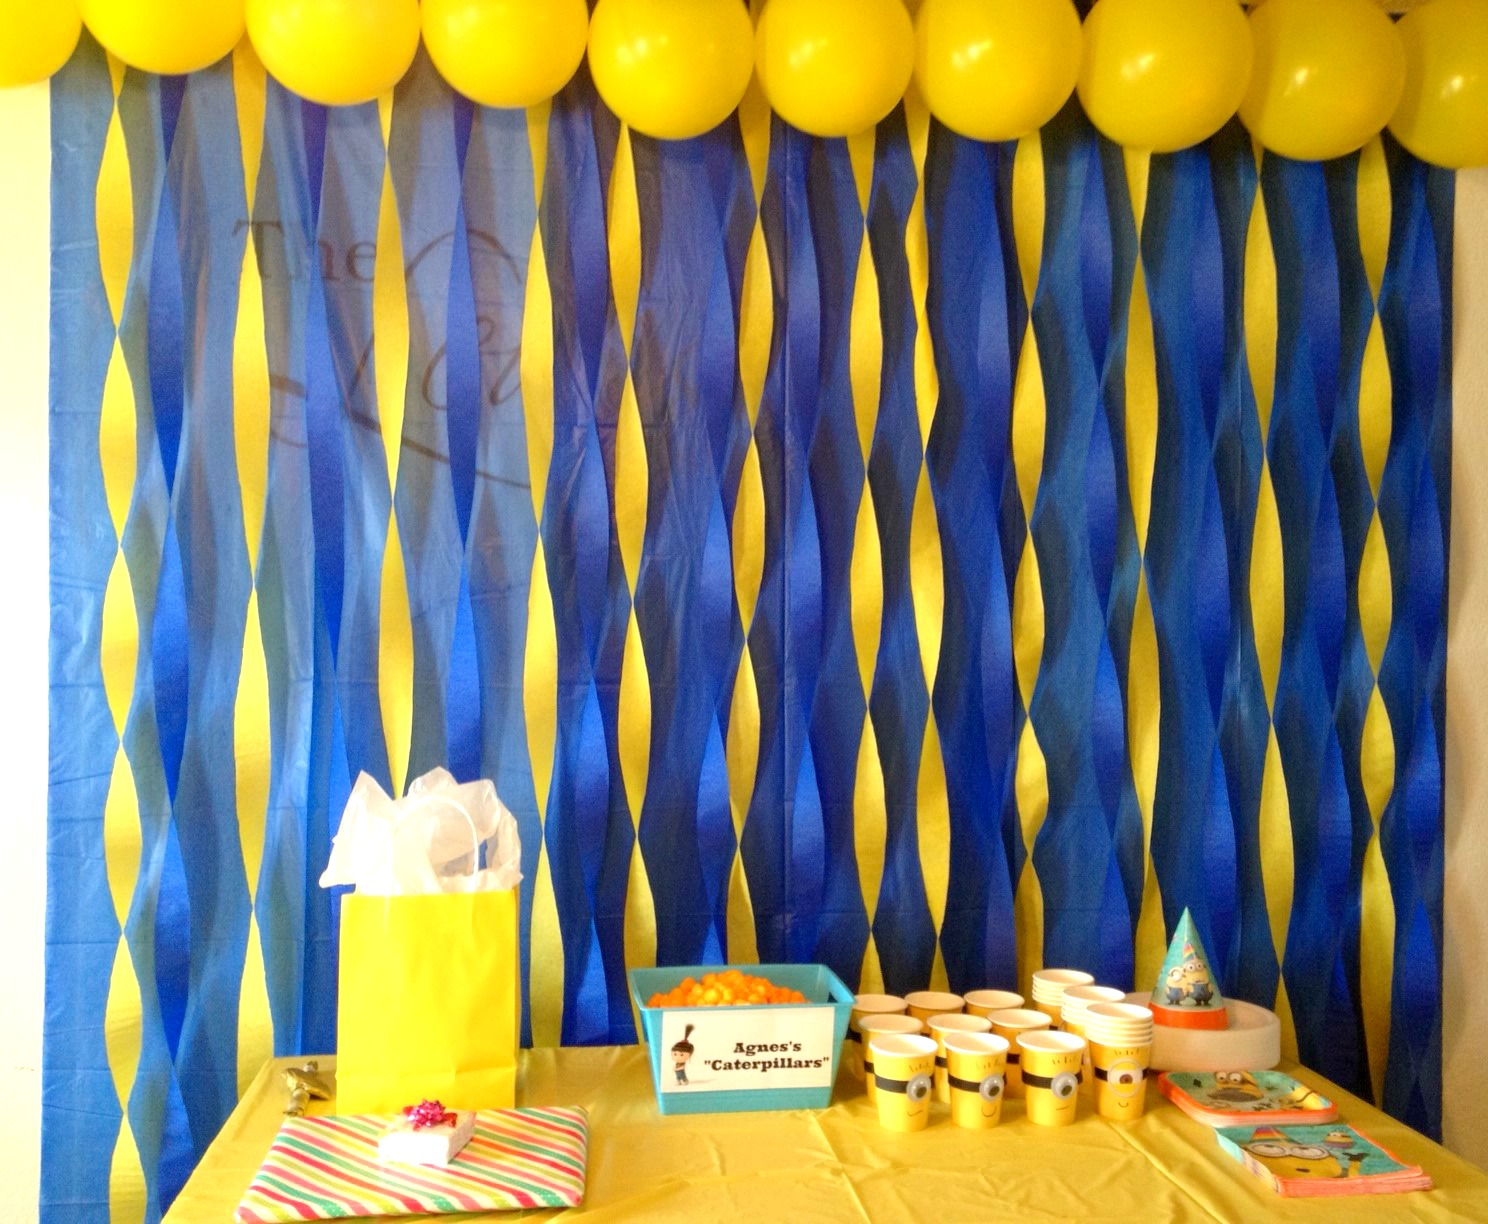 At Littlest Party Toys We Have Ready Made Birthday Banners And Decorations Including Balloons